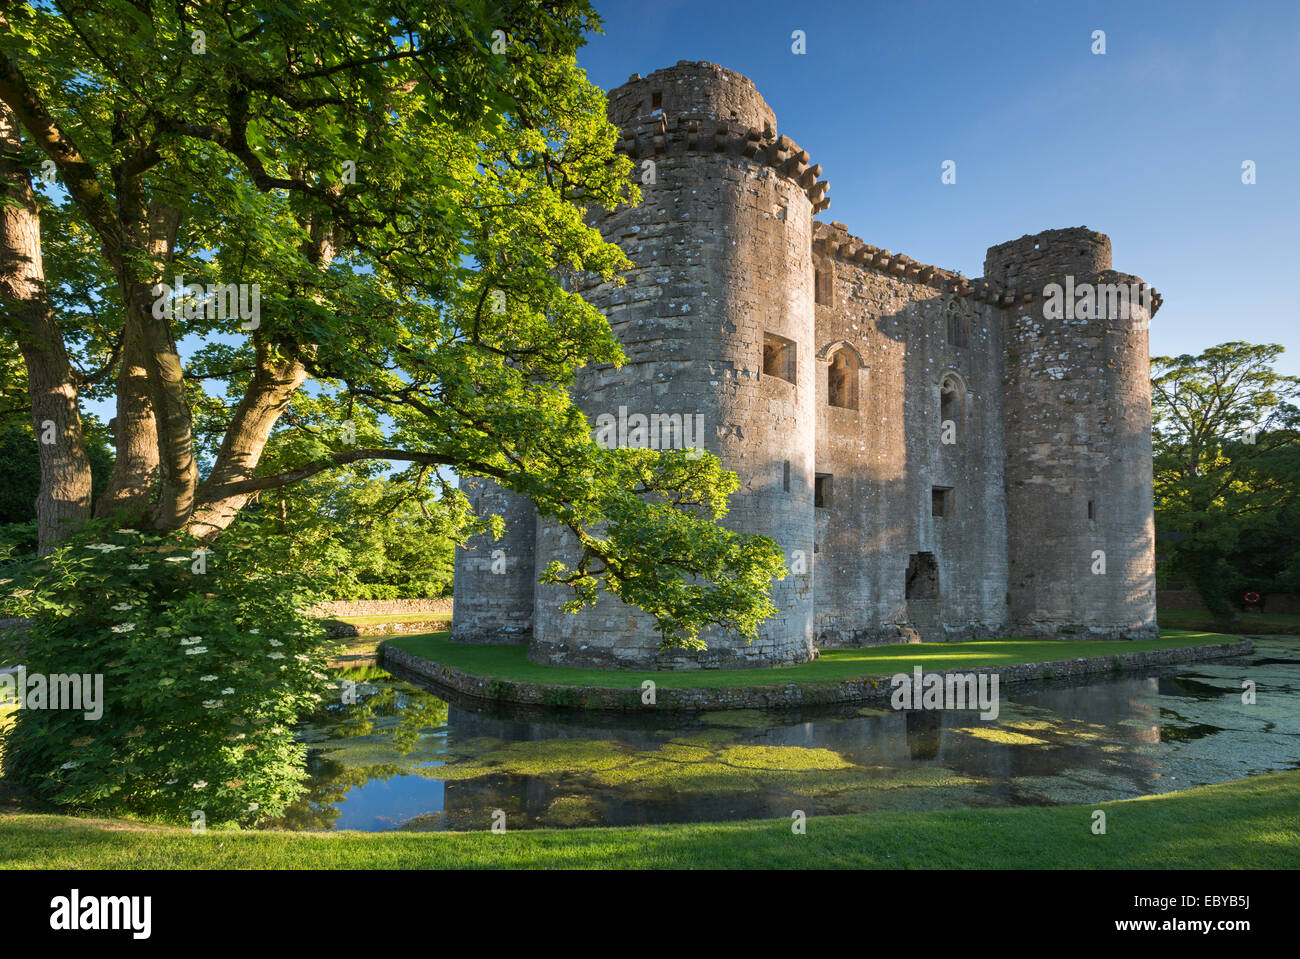 Nunney Castle And Moat In The Village Of Nunney Somerset